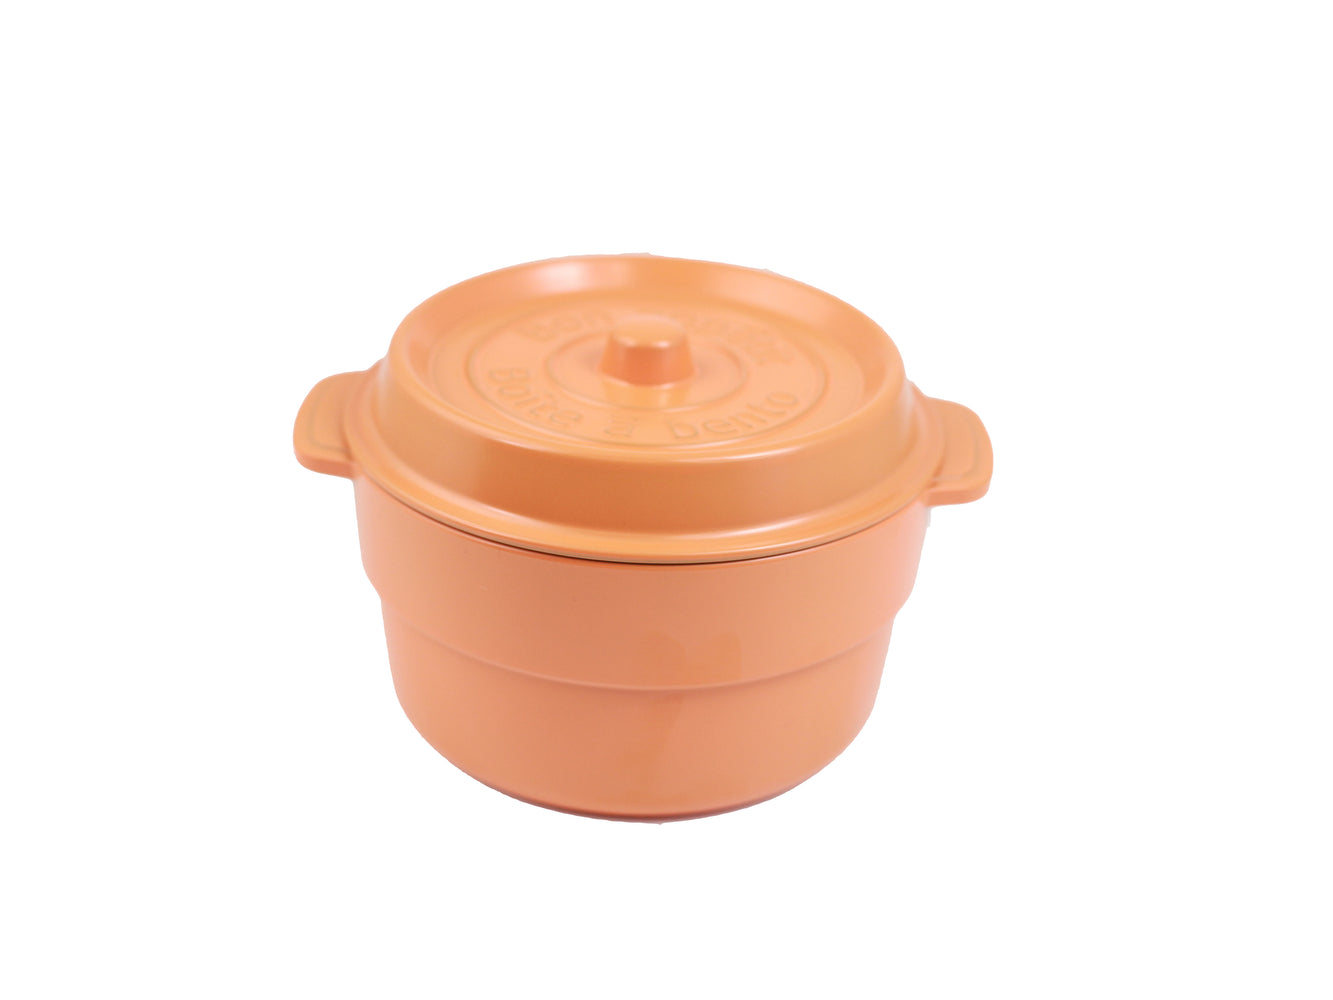 Cocopot Ronde Bento Box | Orange by Takenaka - Bento&con the Bento Boxes specialist from Kyoto